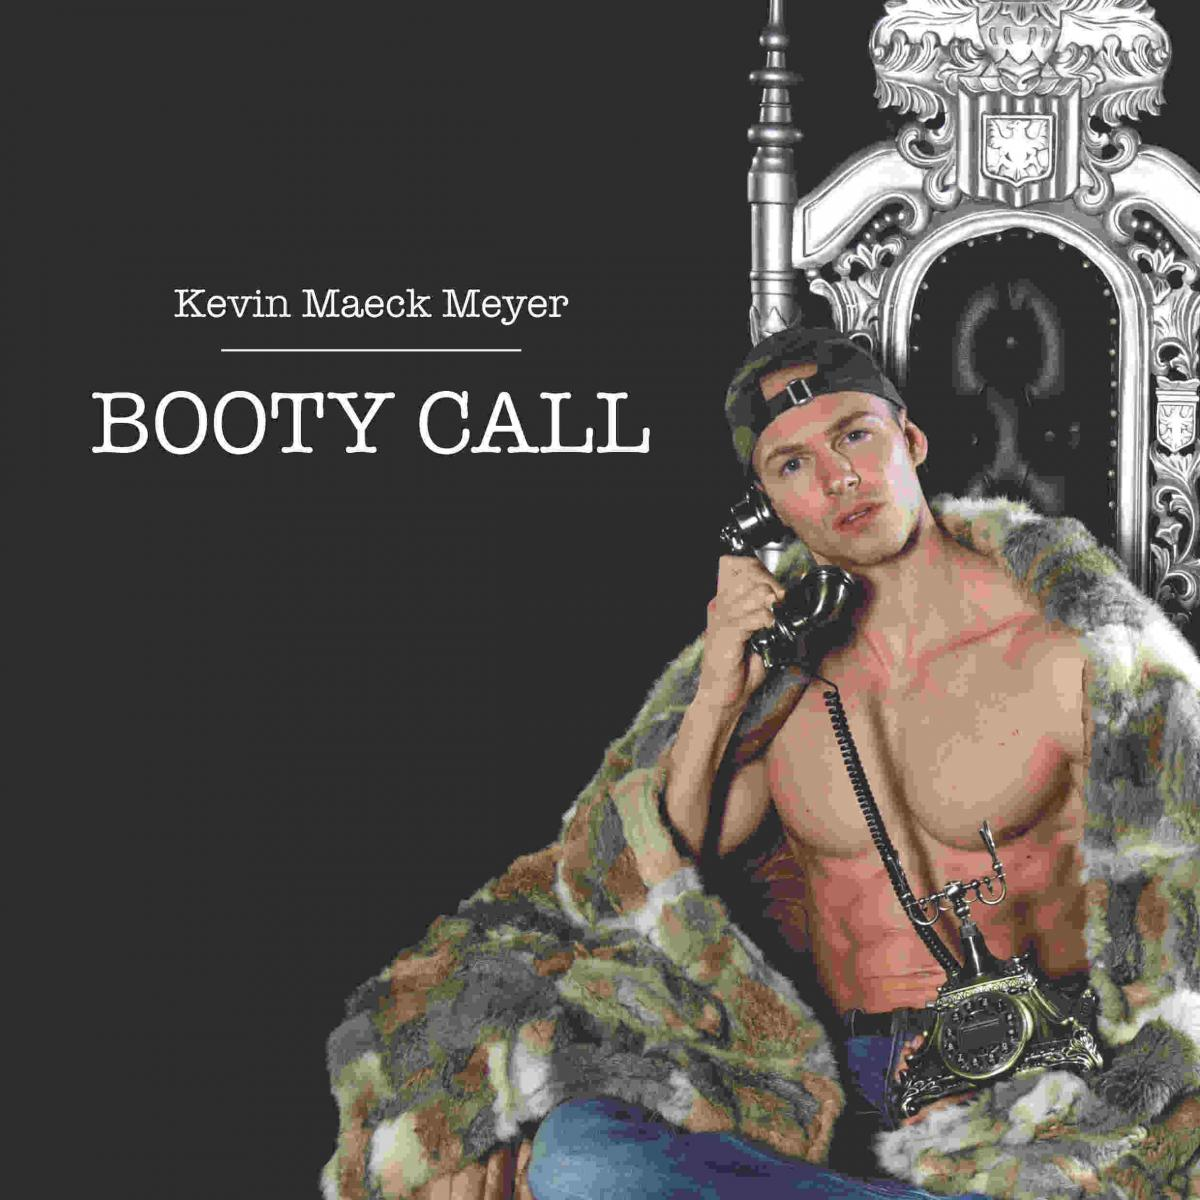 Upcoming: Kevin Maeck Meyer - Booty Call